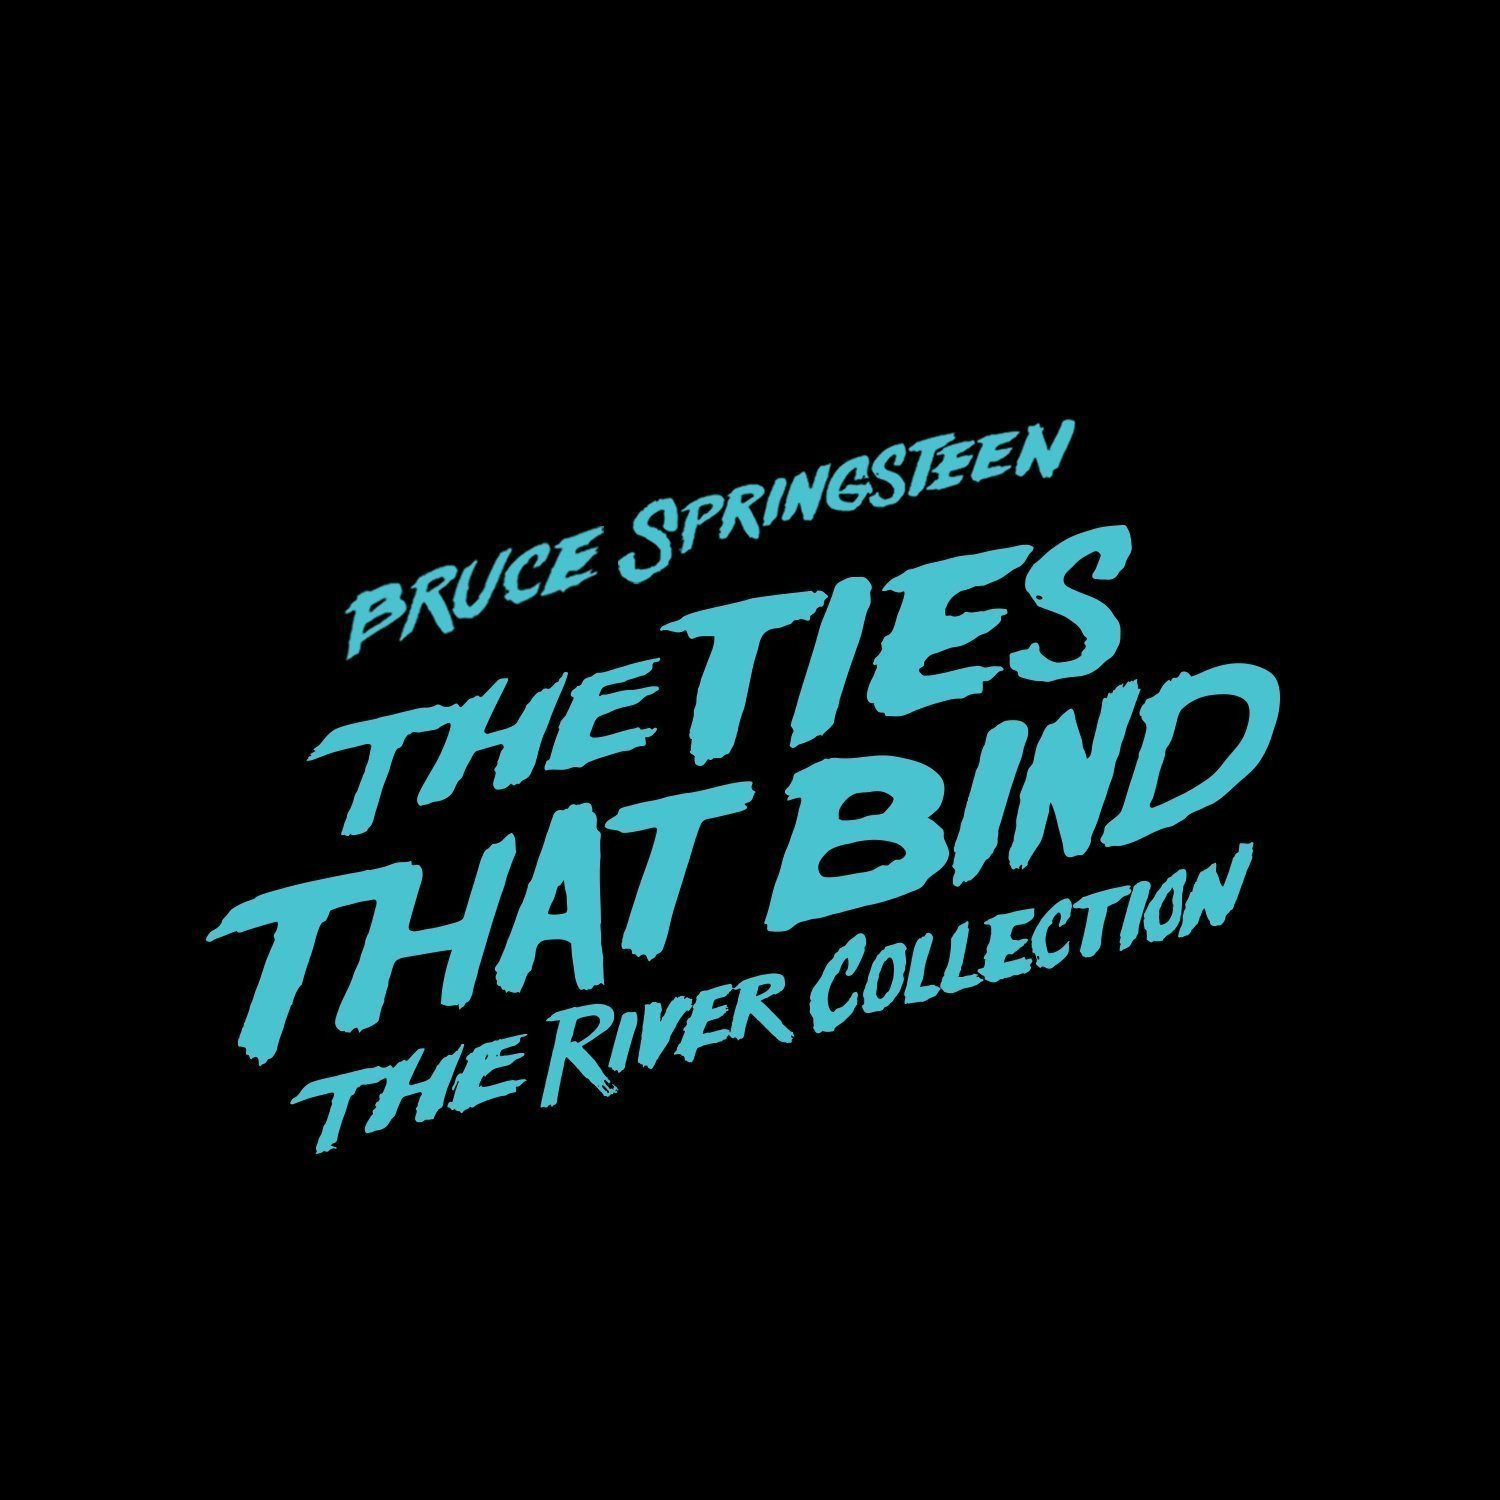 Bruce Springsteen - The Ties That Bind: The River Collection [4 CDs und 2 Blu-rays]